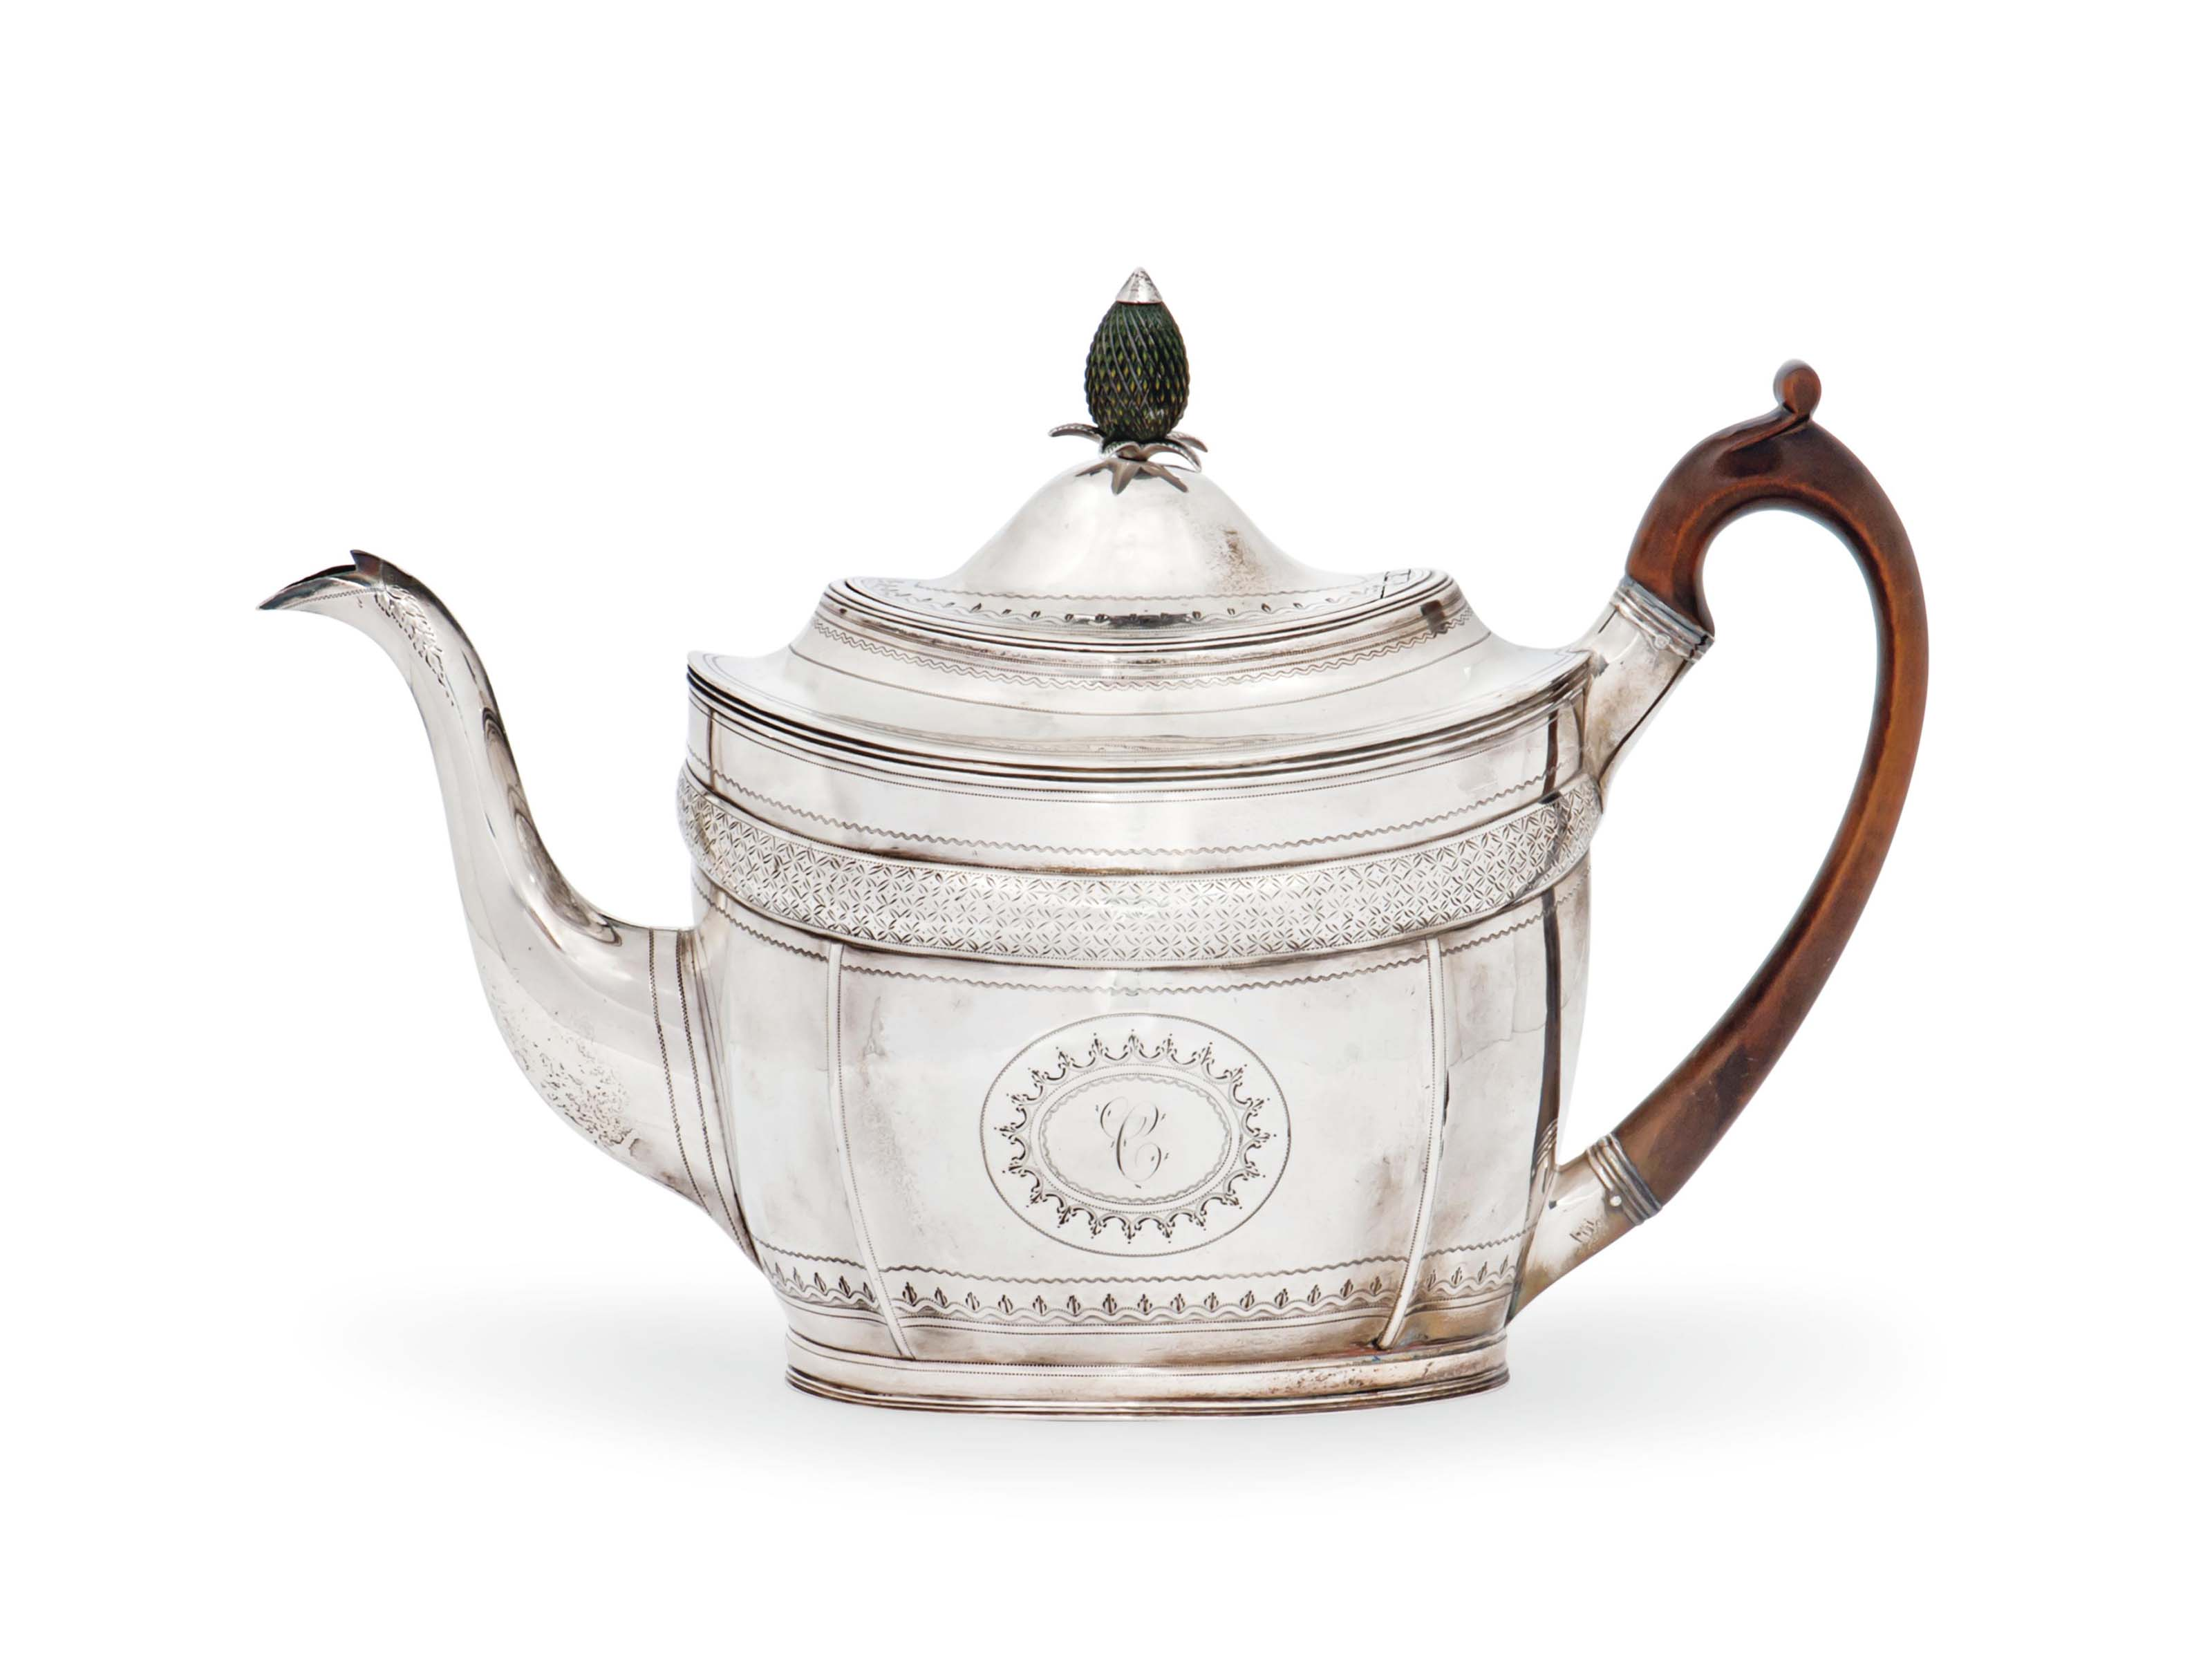 A GEORGE III OVAL SILVER TEAPOT